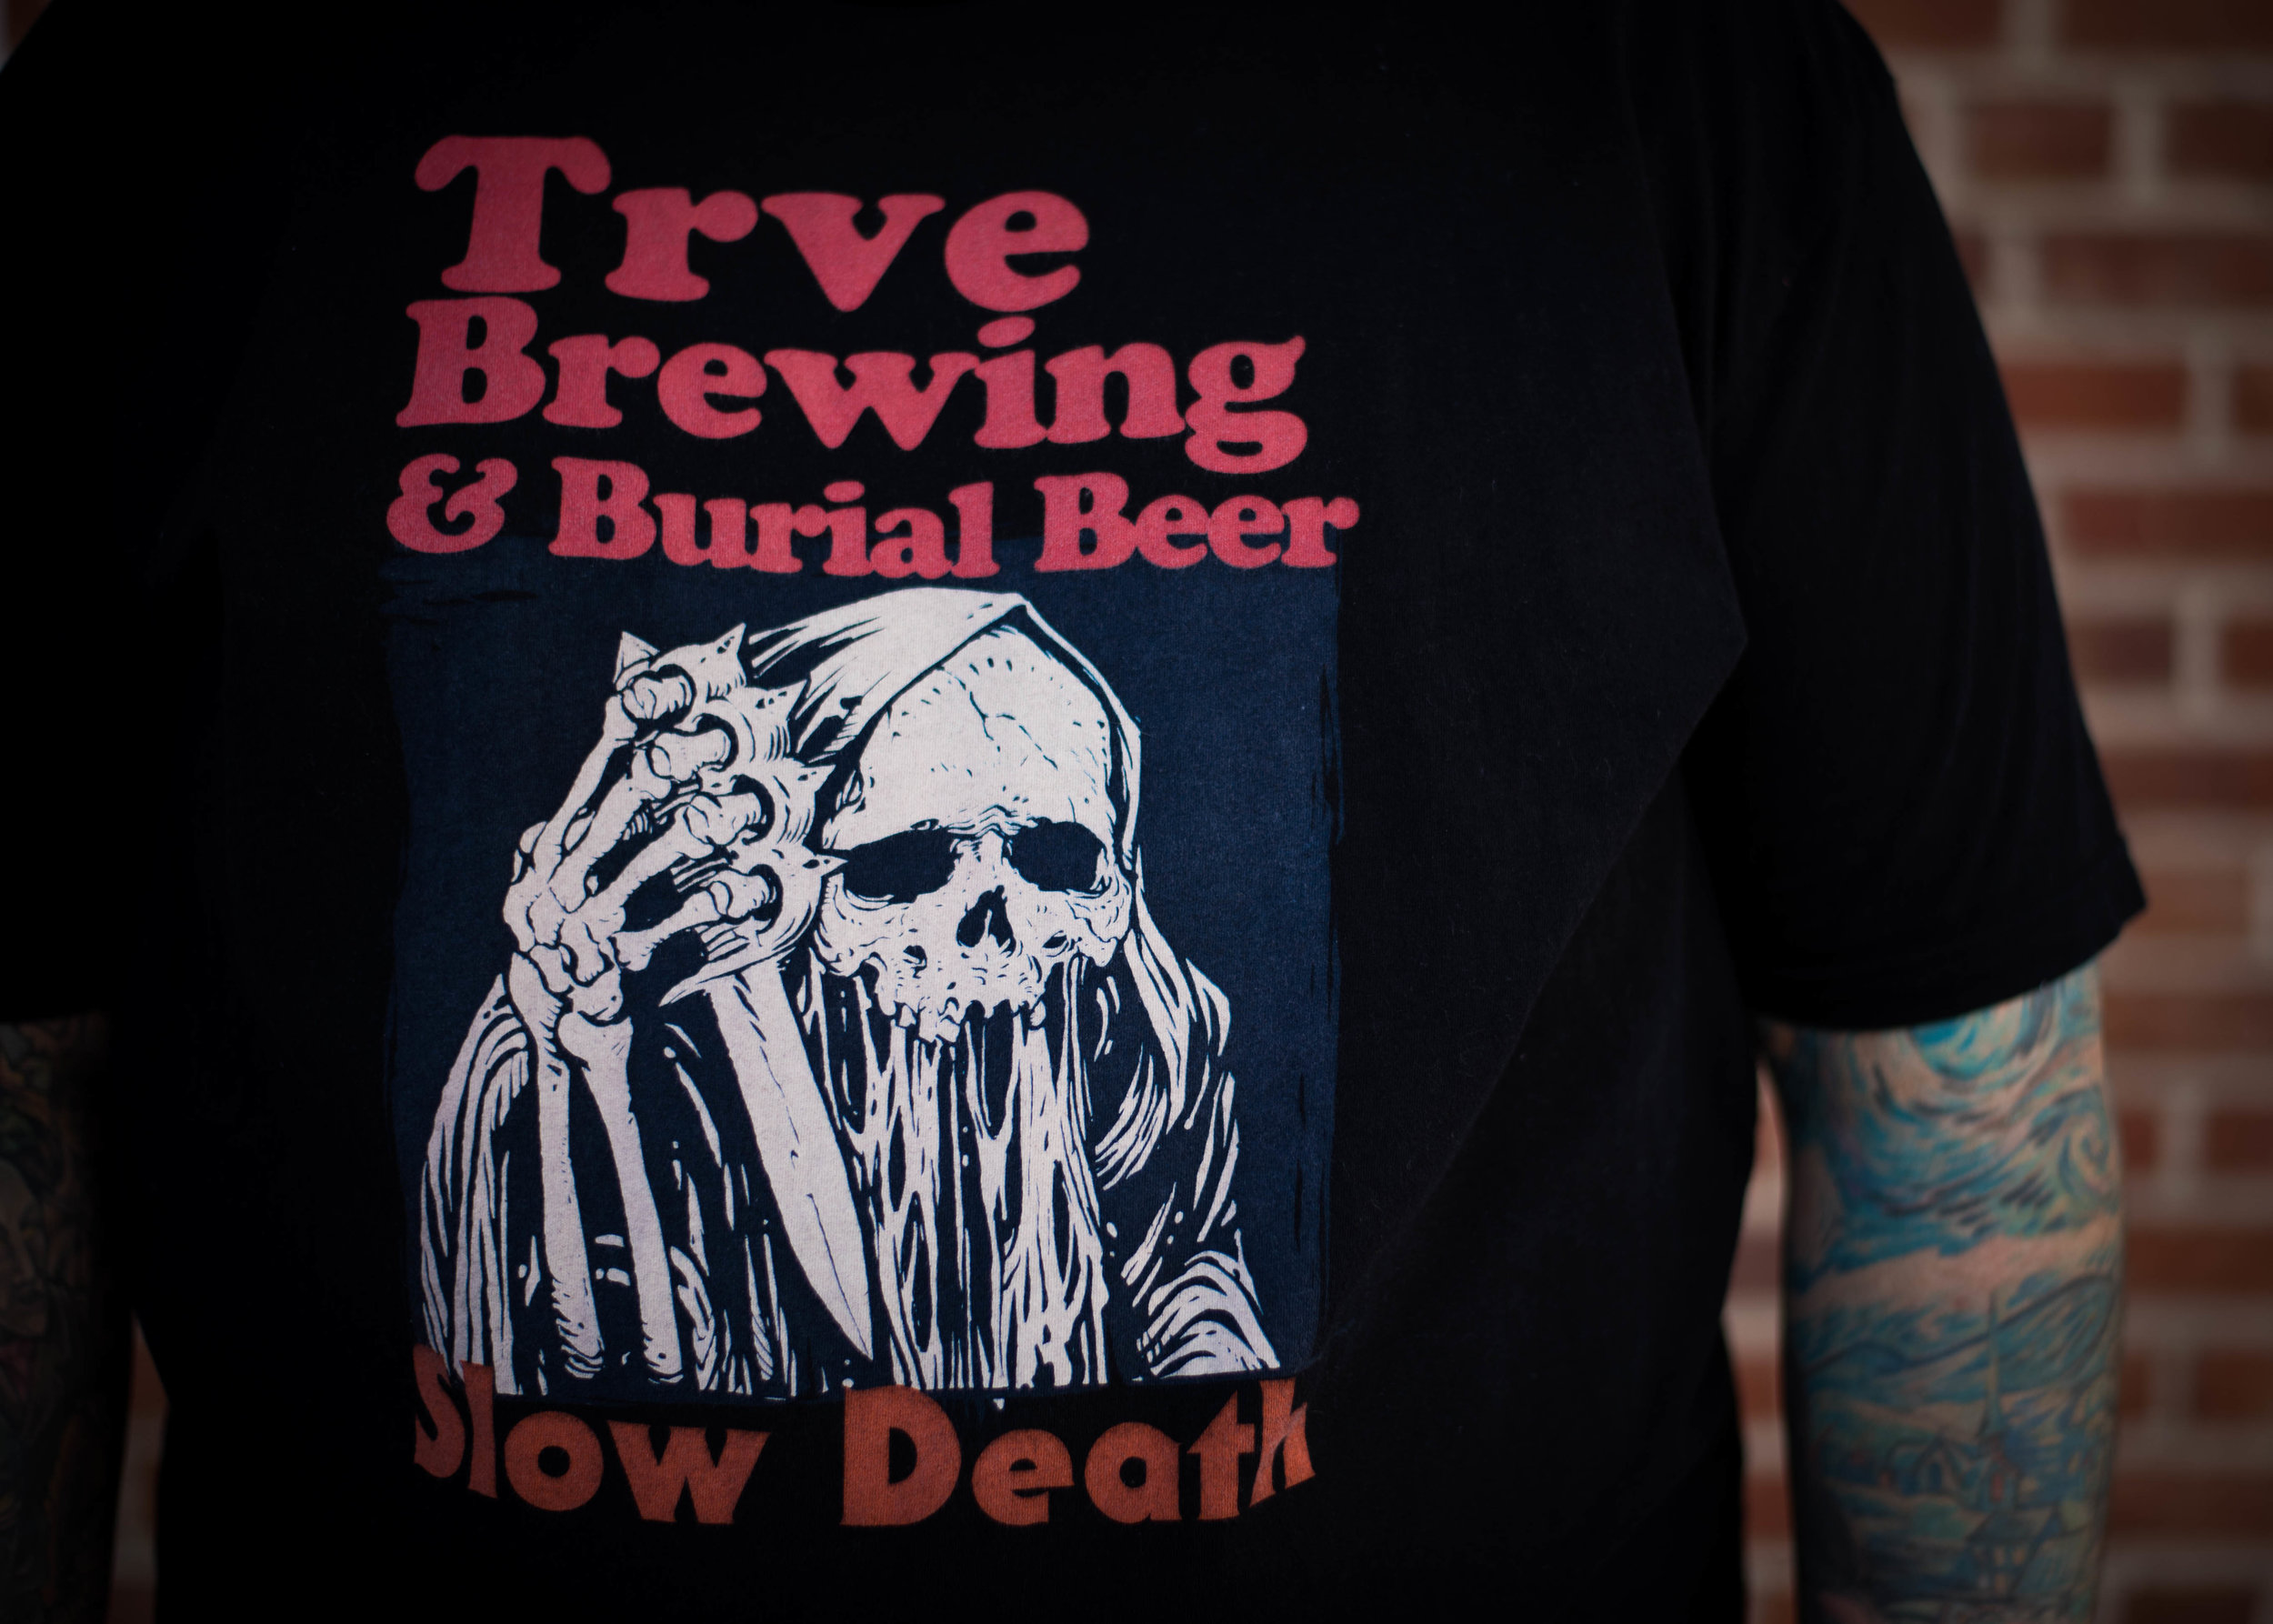 Trve Brewing & Burial Beer. Print Method SOFT. Screen printed on a Next Level shirt. Printed by A Small Print Shop.